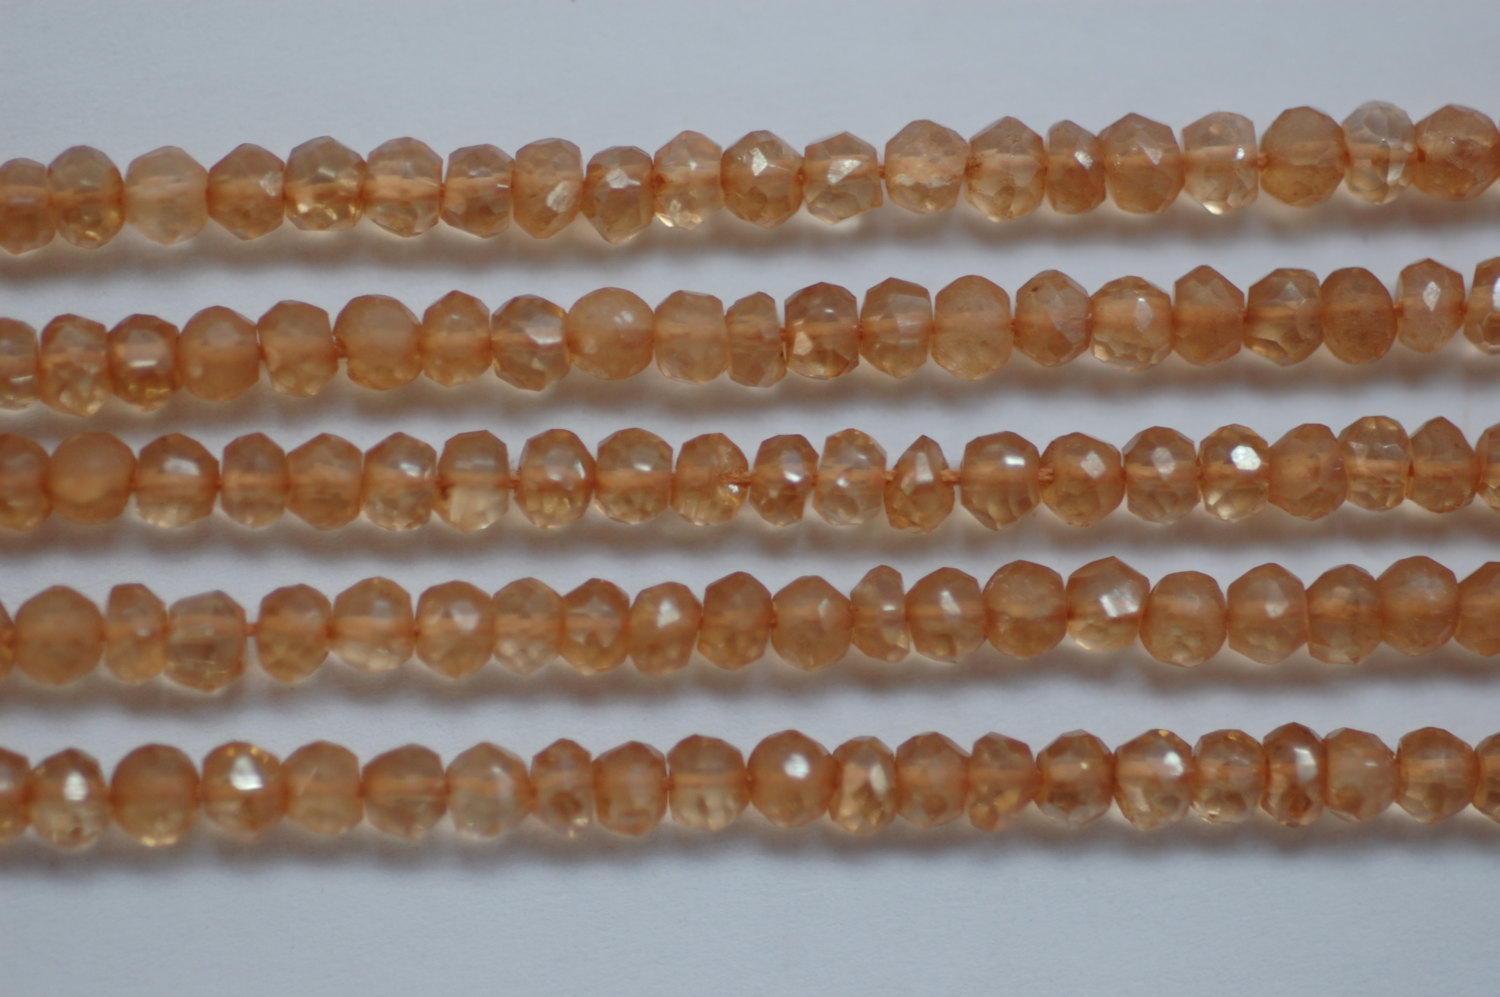 Mystic Peach Quartz Rondelle Faceted